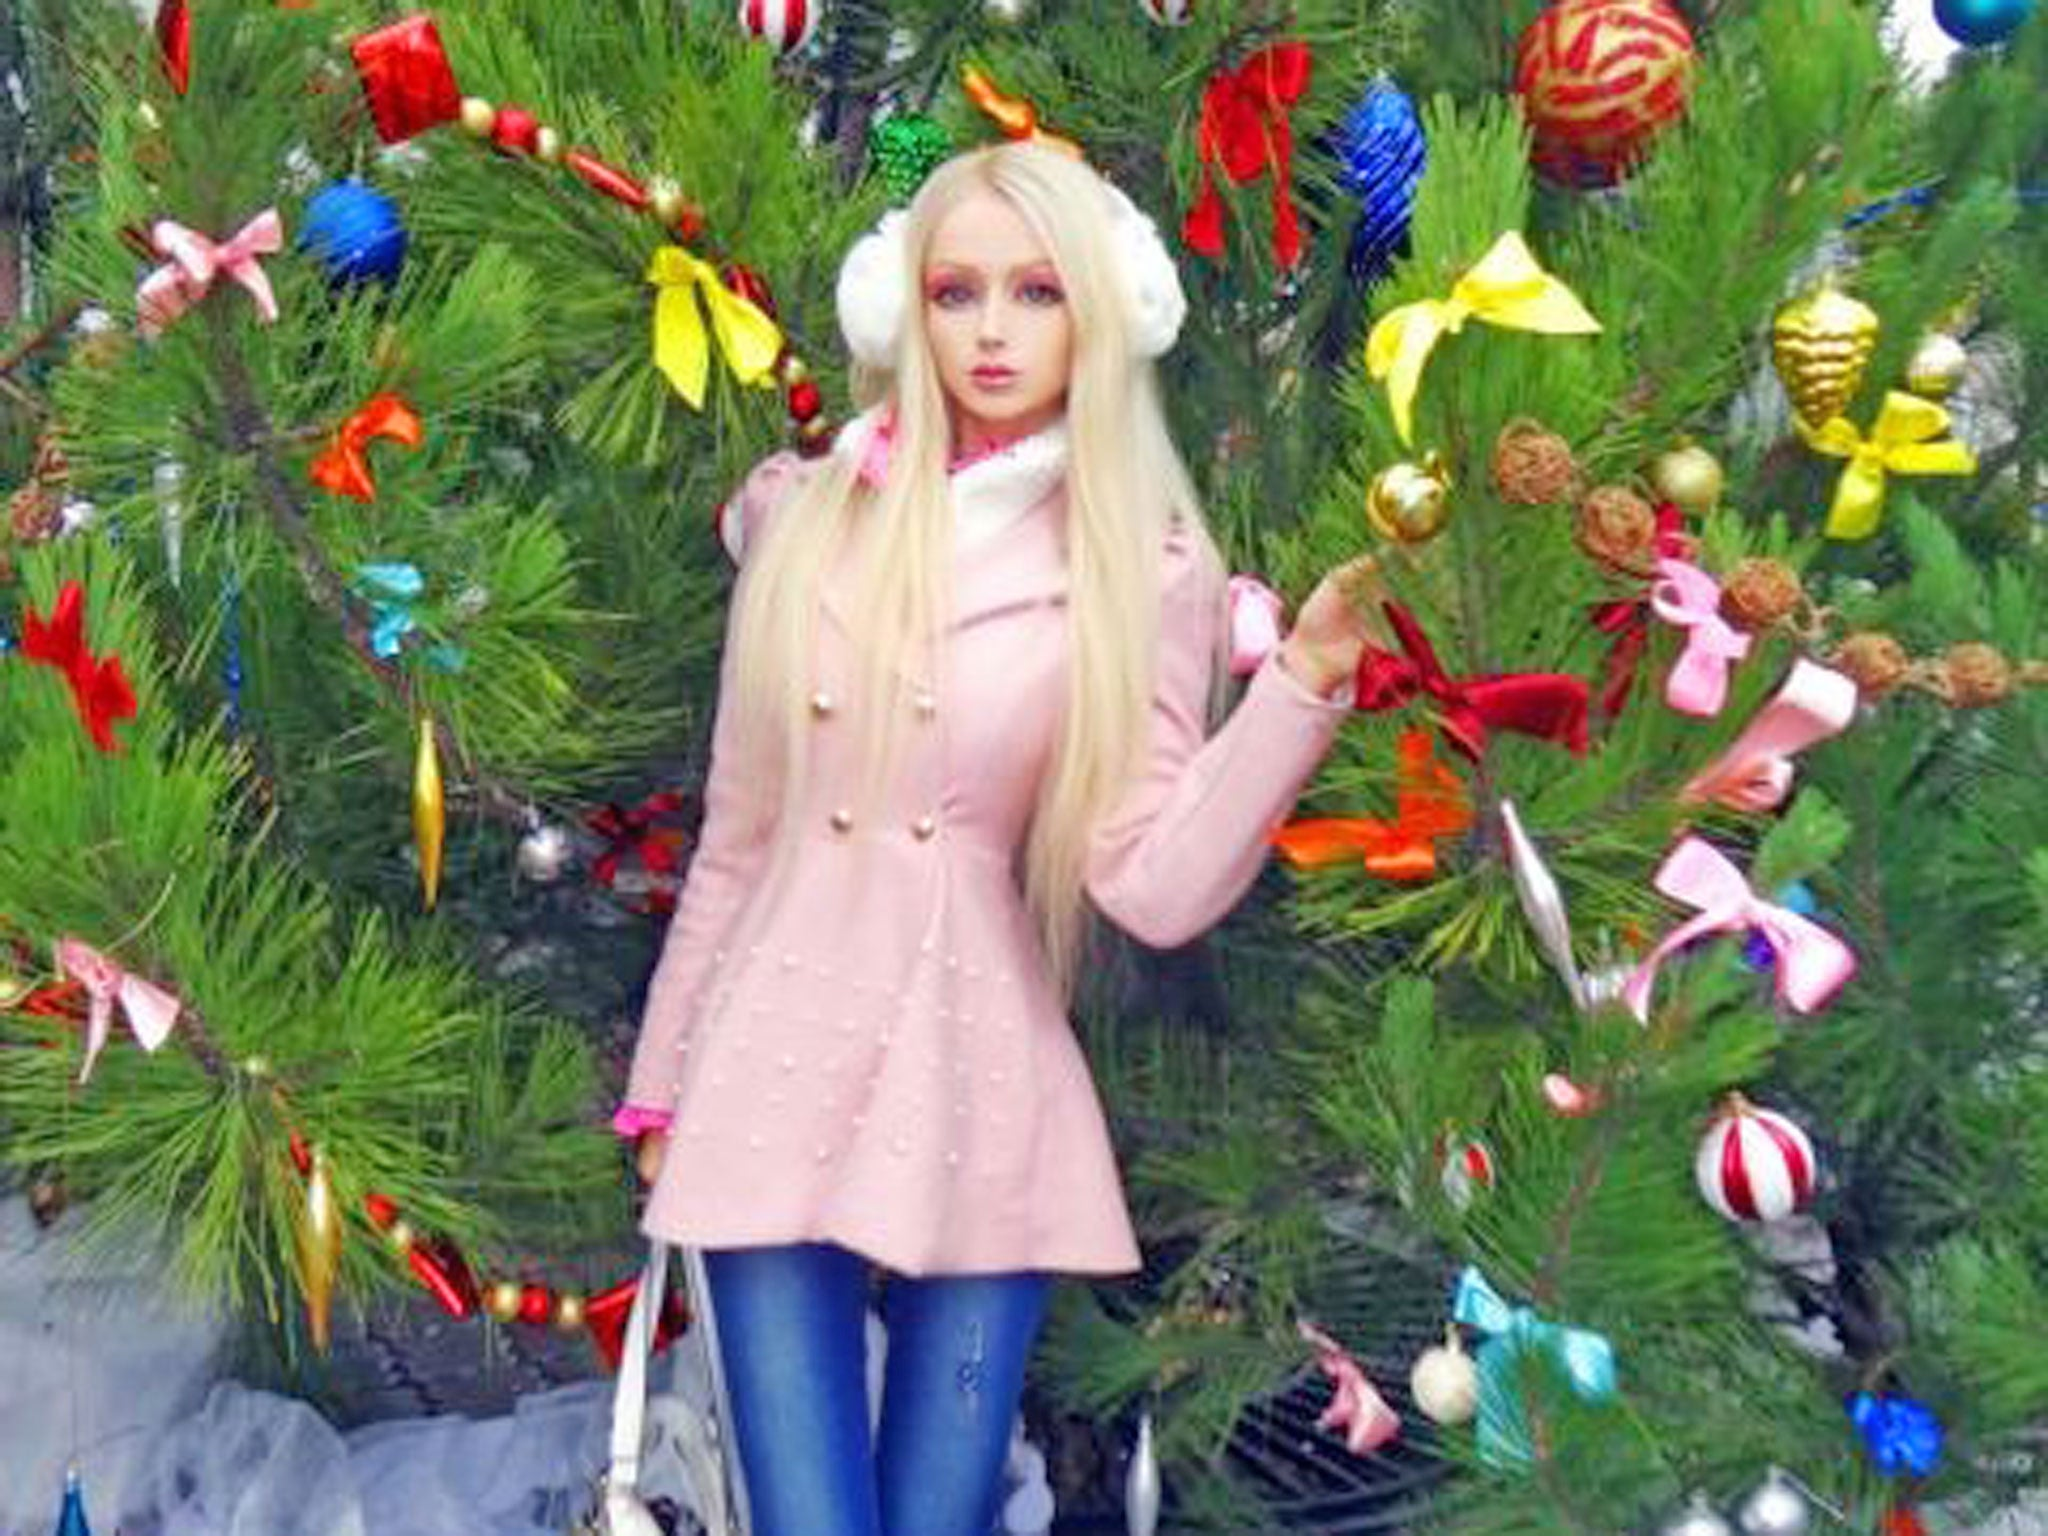 news world europe life plastic fantastic meet ukraine real barbie girl